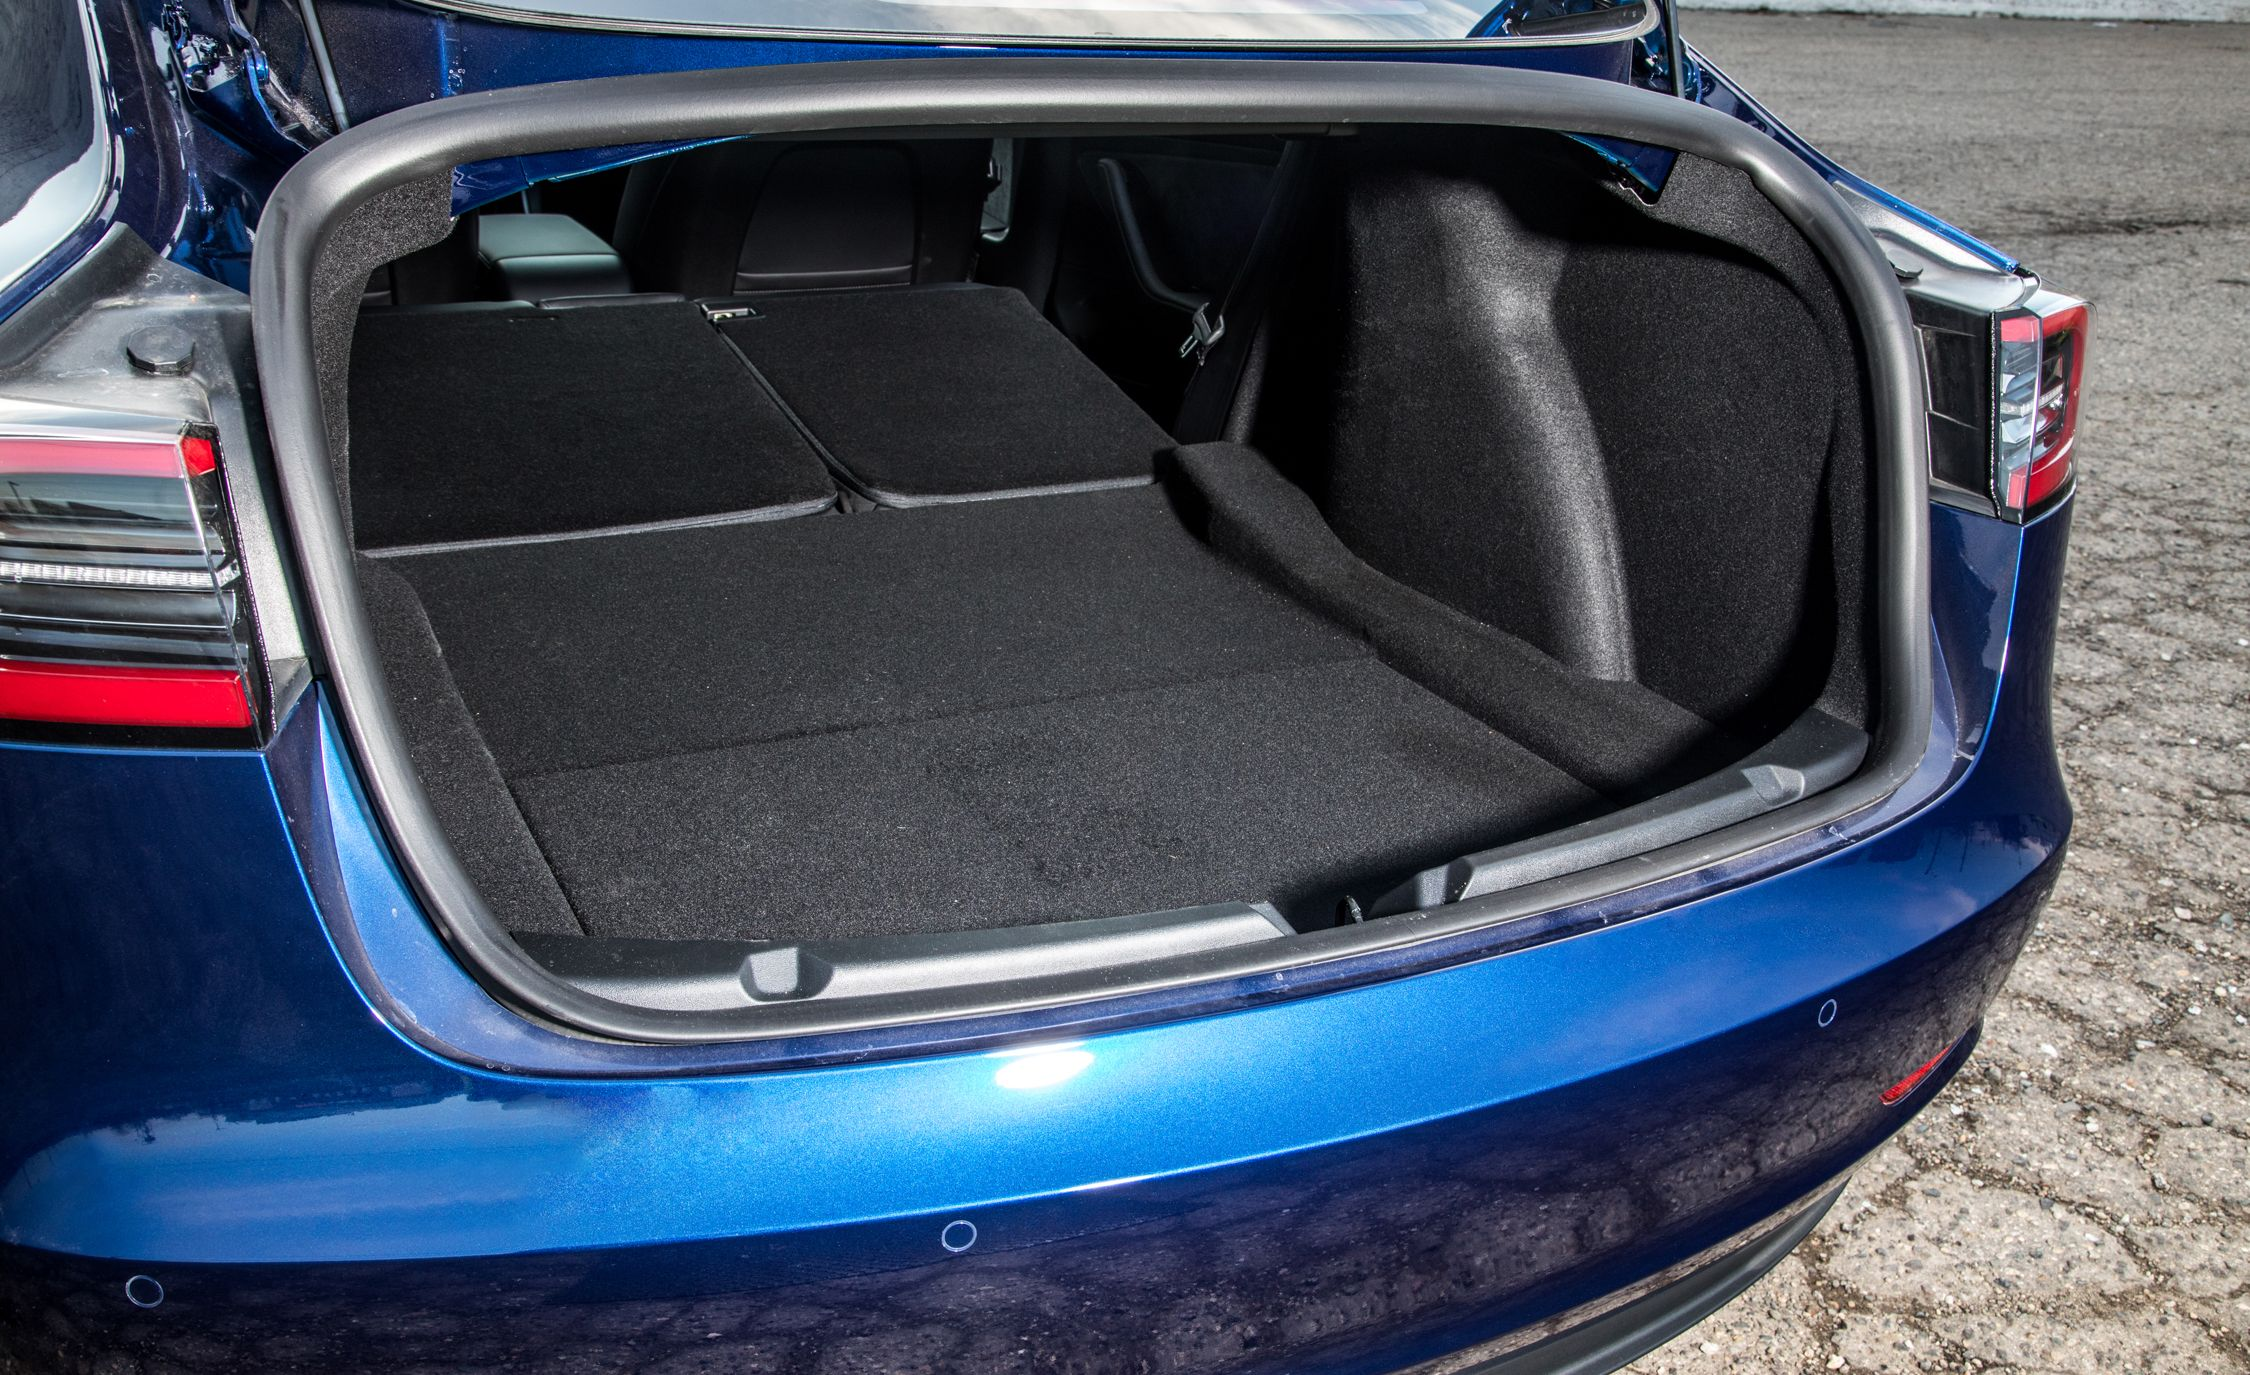 2019 Tesla Model 3 Reviews | Tesla Model 3 Price, Photos, and Specs | Car and Driver